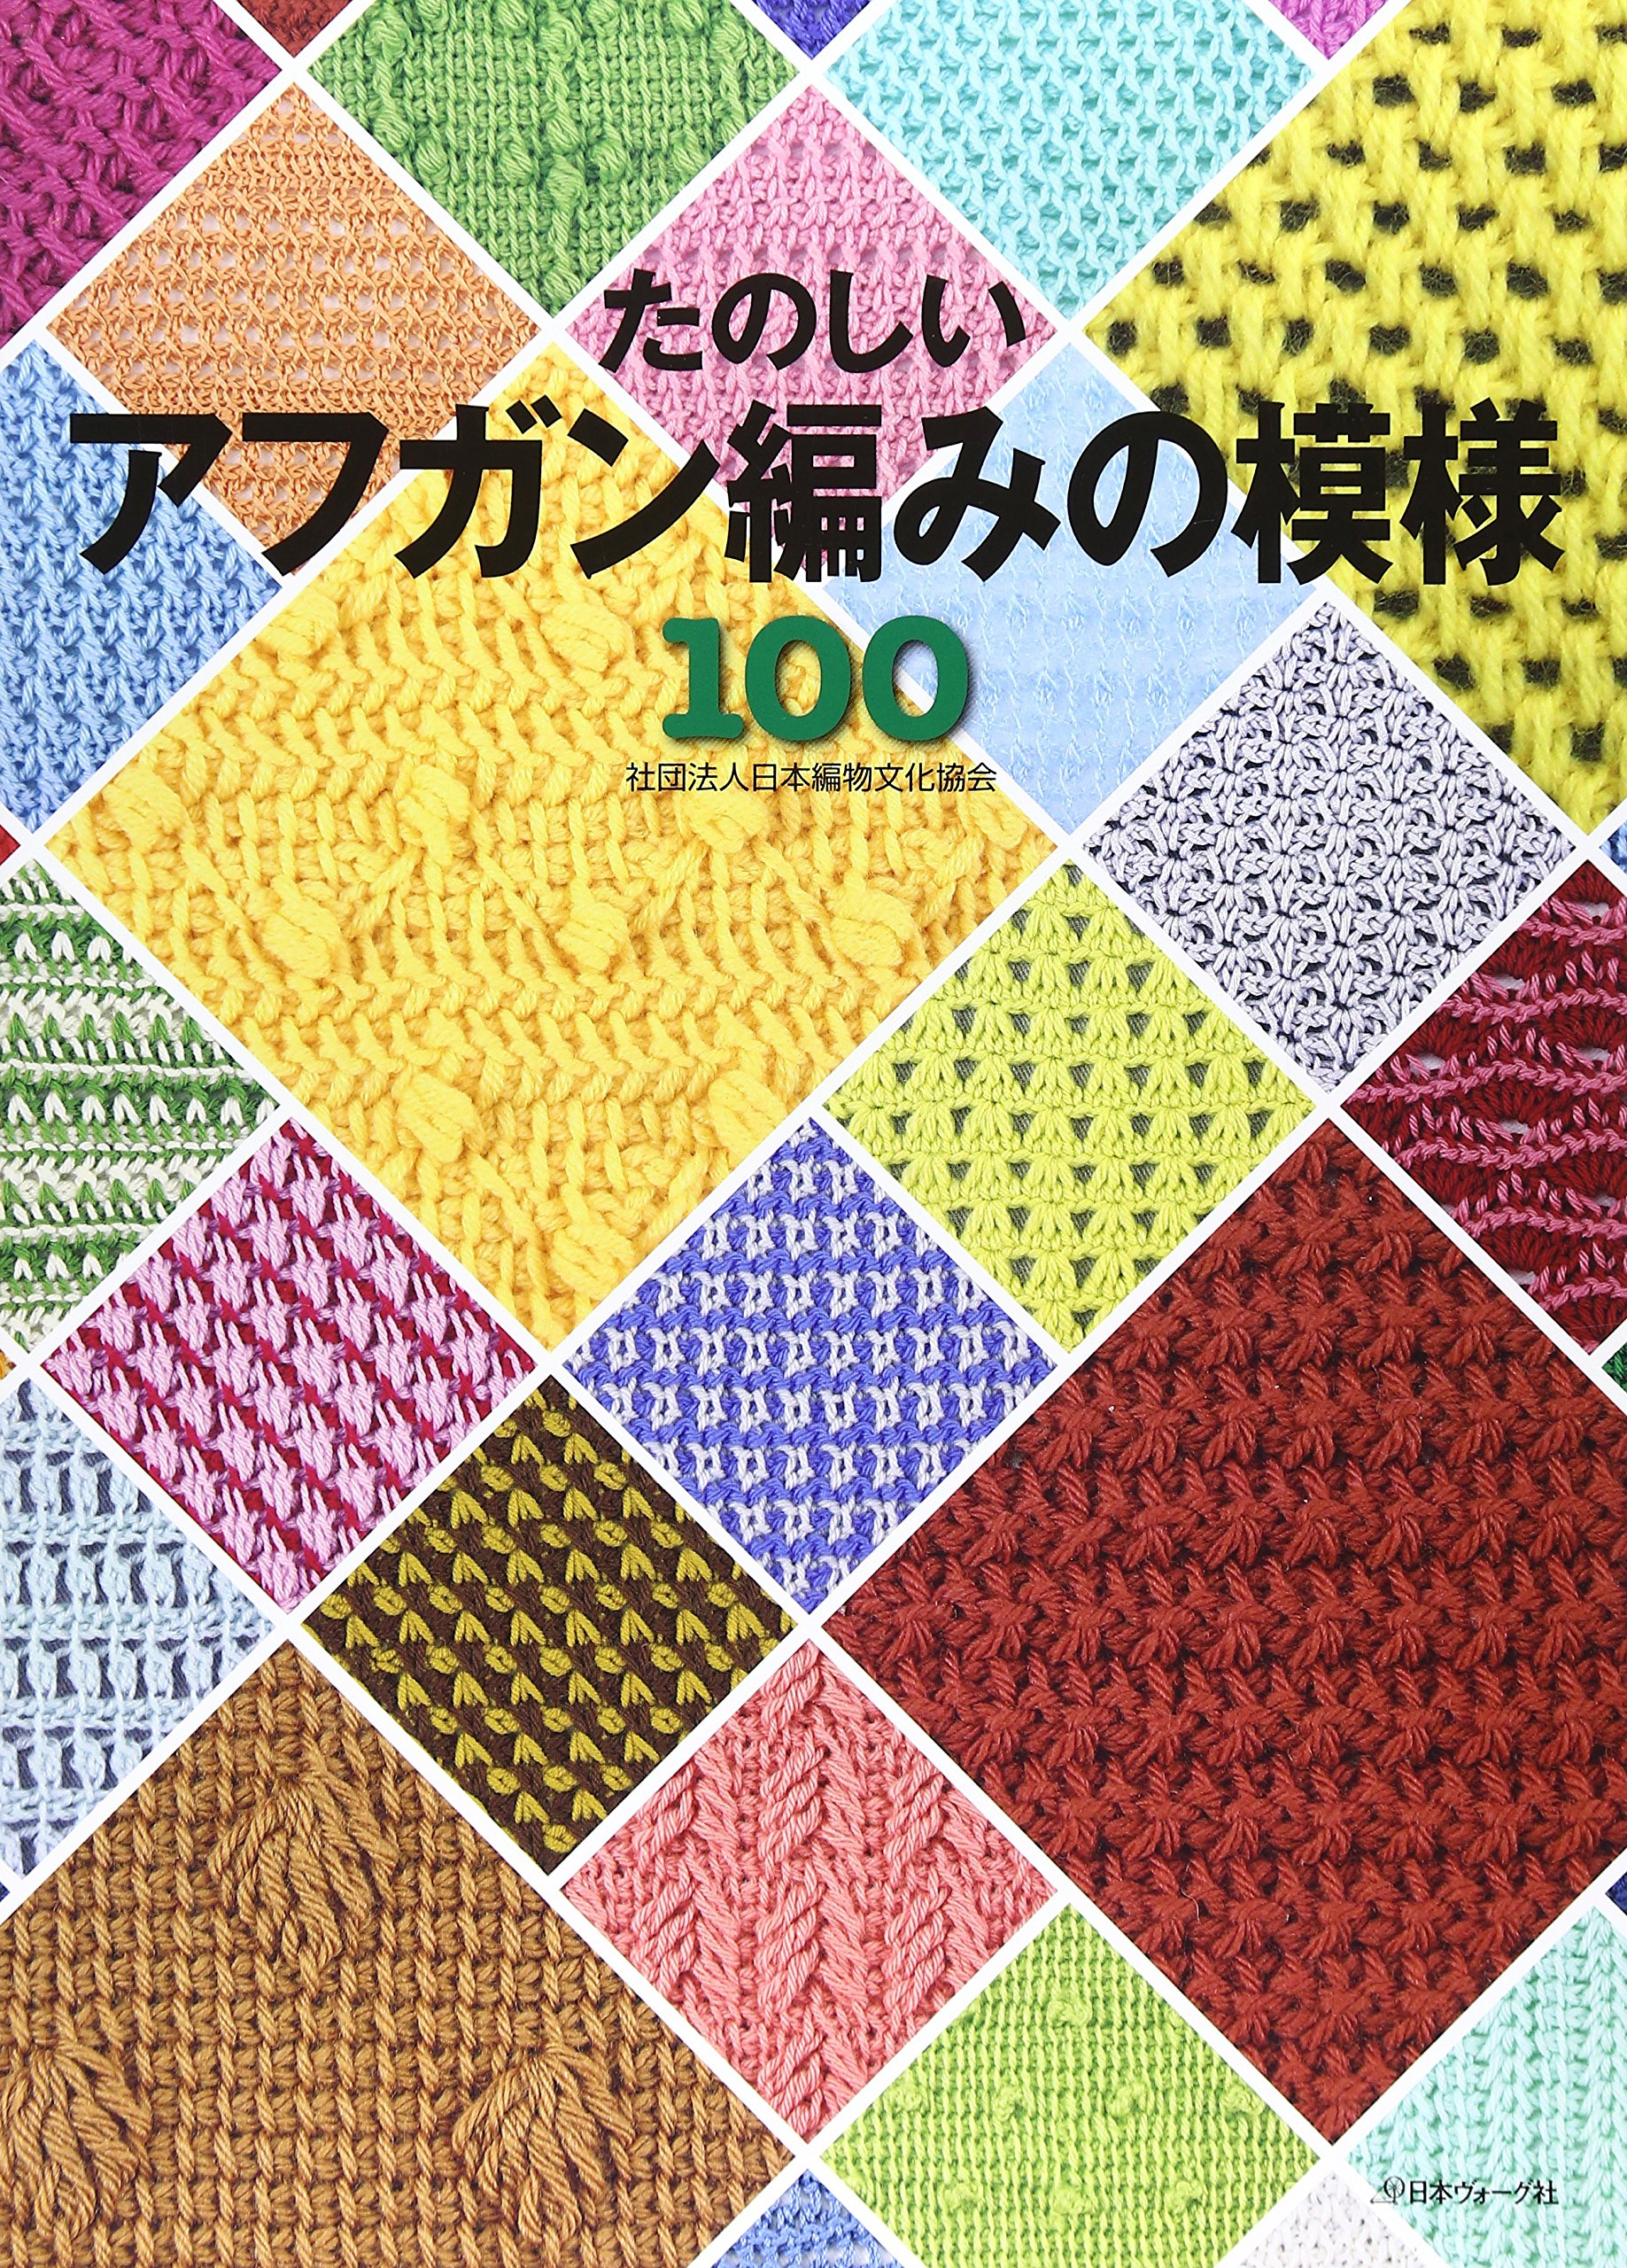 Tunisian Crochet Patterns 100 ????????編??模様100